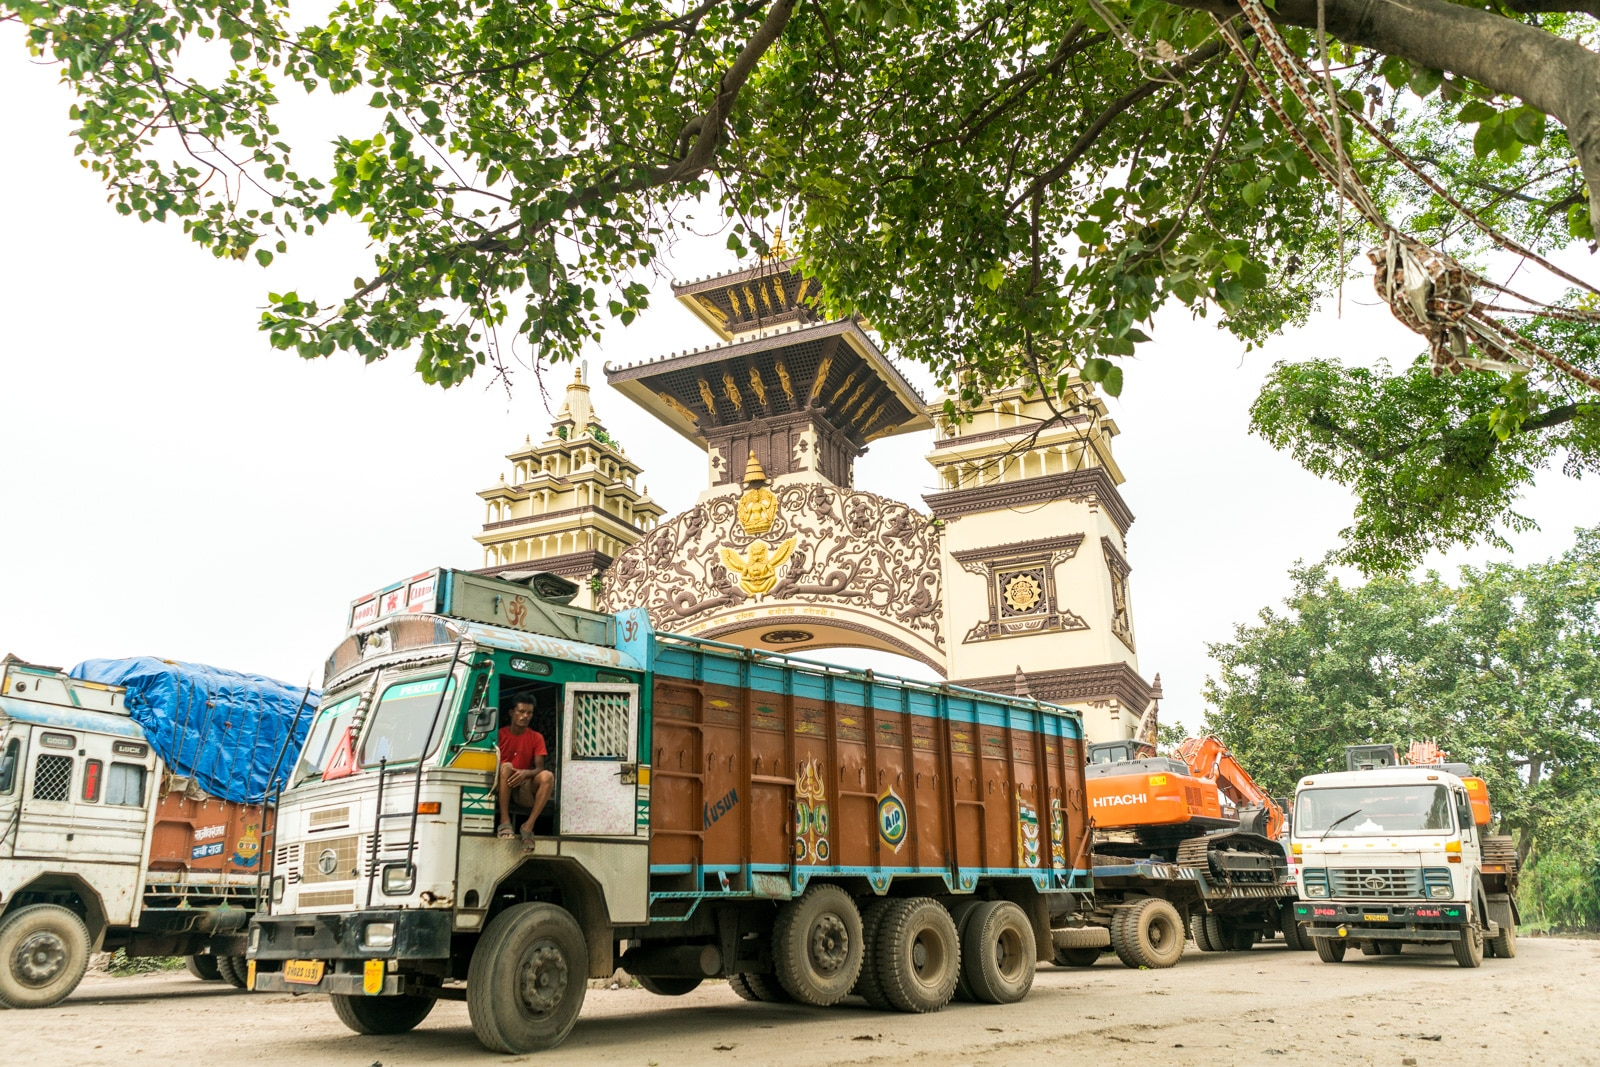 Overland at the Nepal - India border crossing at Birganj and Raxaul - Shipping trucks at the border gate - Lost With Purpose